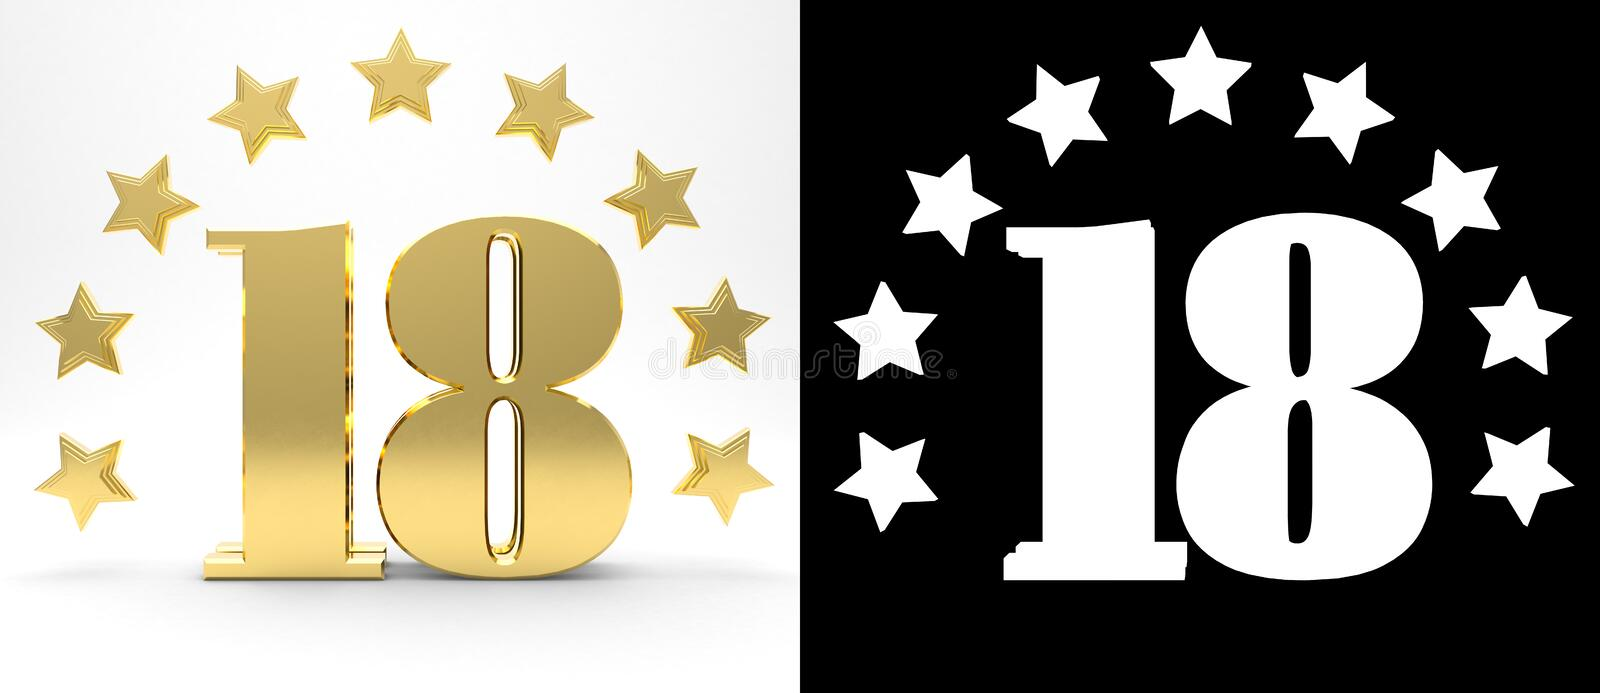 Golden number eighteen on white background with drop shadow and alpha channel , decorated with a circle of stars. 3D illustration stock illustration